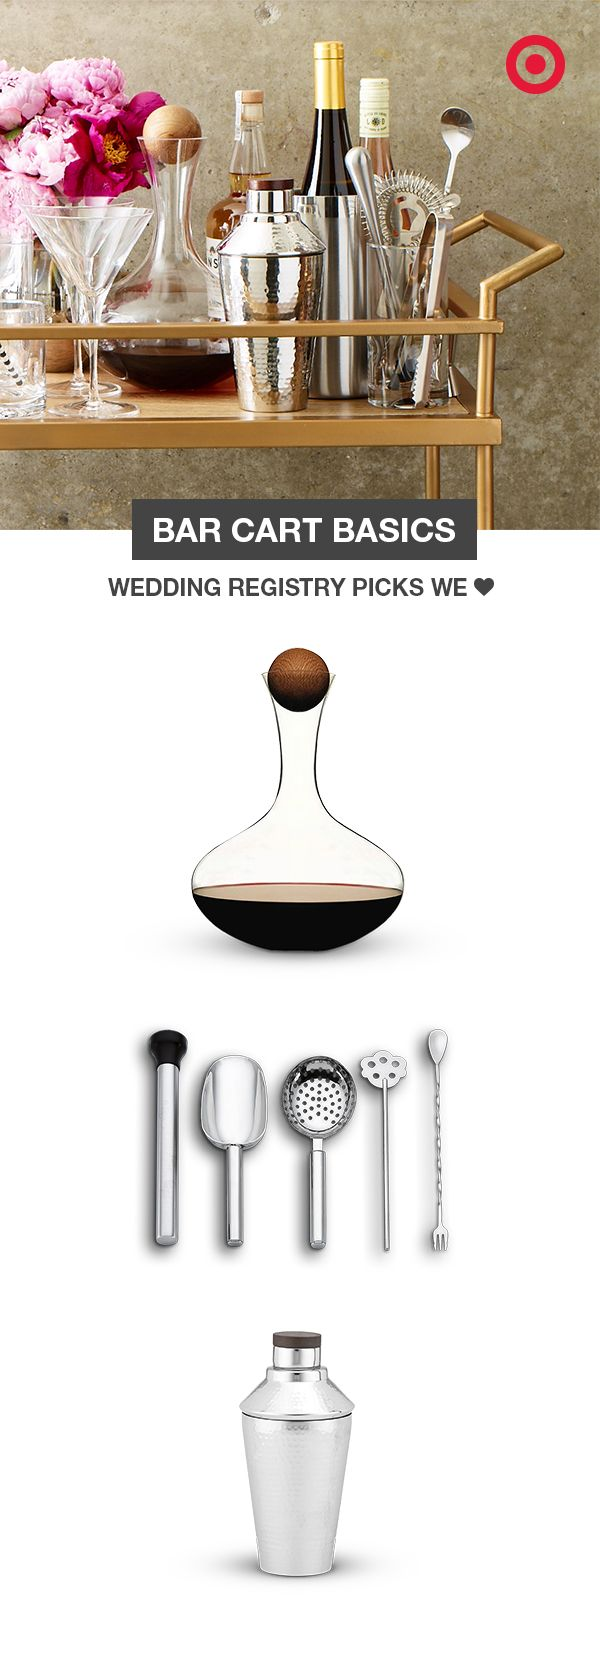 Include on your wedding registry everything you need to stock a well-equipped bar cart. Start with a wine decanter, bar tools, a cocktail shaker, and even the bar cart itself. Then just add your favorite spirits and mixers, and you'll be more than ready when the party's at your place.